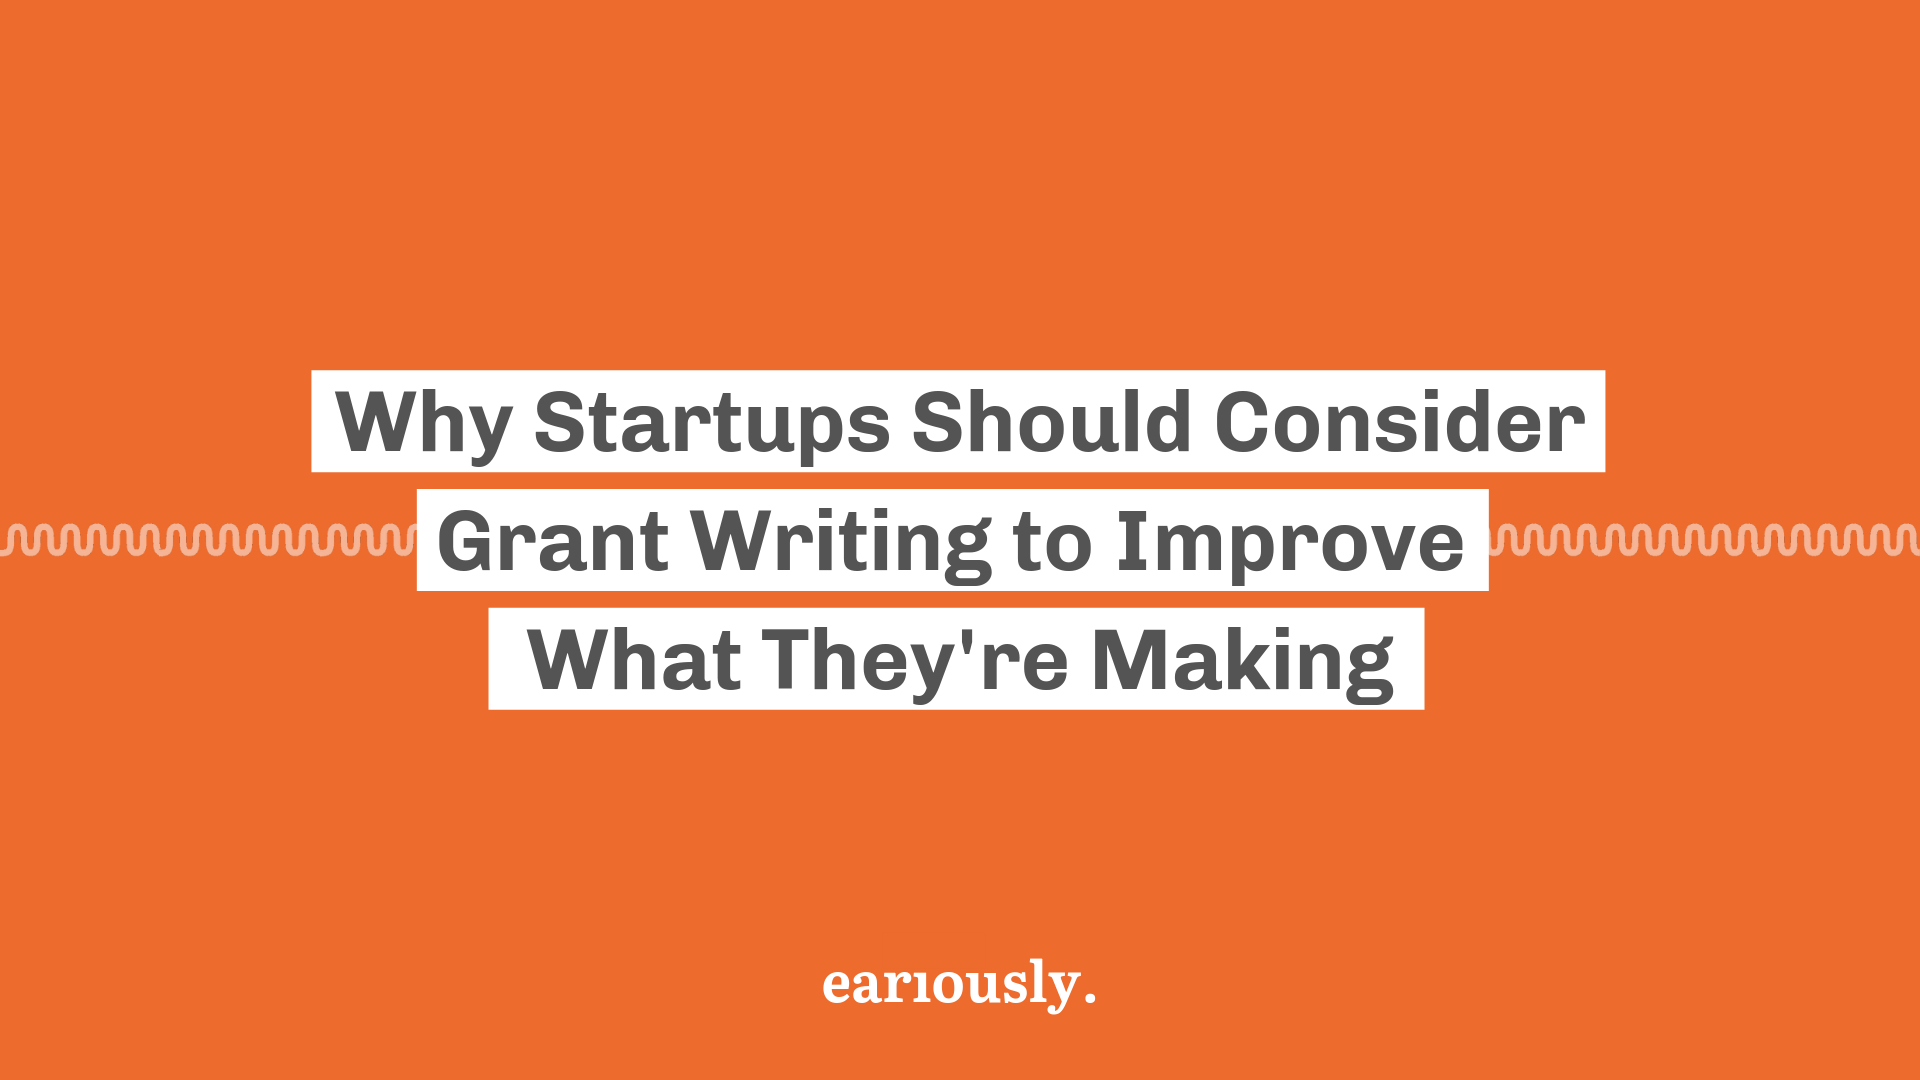 Eariously Startup Maine Grant Grantwriting